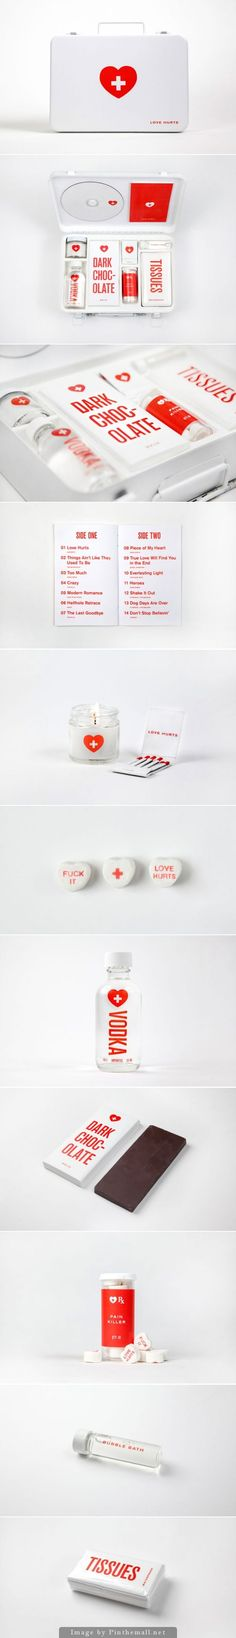 Get the Best and Most Unique Packaging Box Ideas! Packaging Box Design, Cool Packaging, Packaging Design Inspiration, Brand Packaging, Packaging Boxes, Product Packaging, Design Ideas, Corporate Design, Medical Design